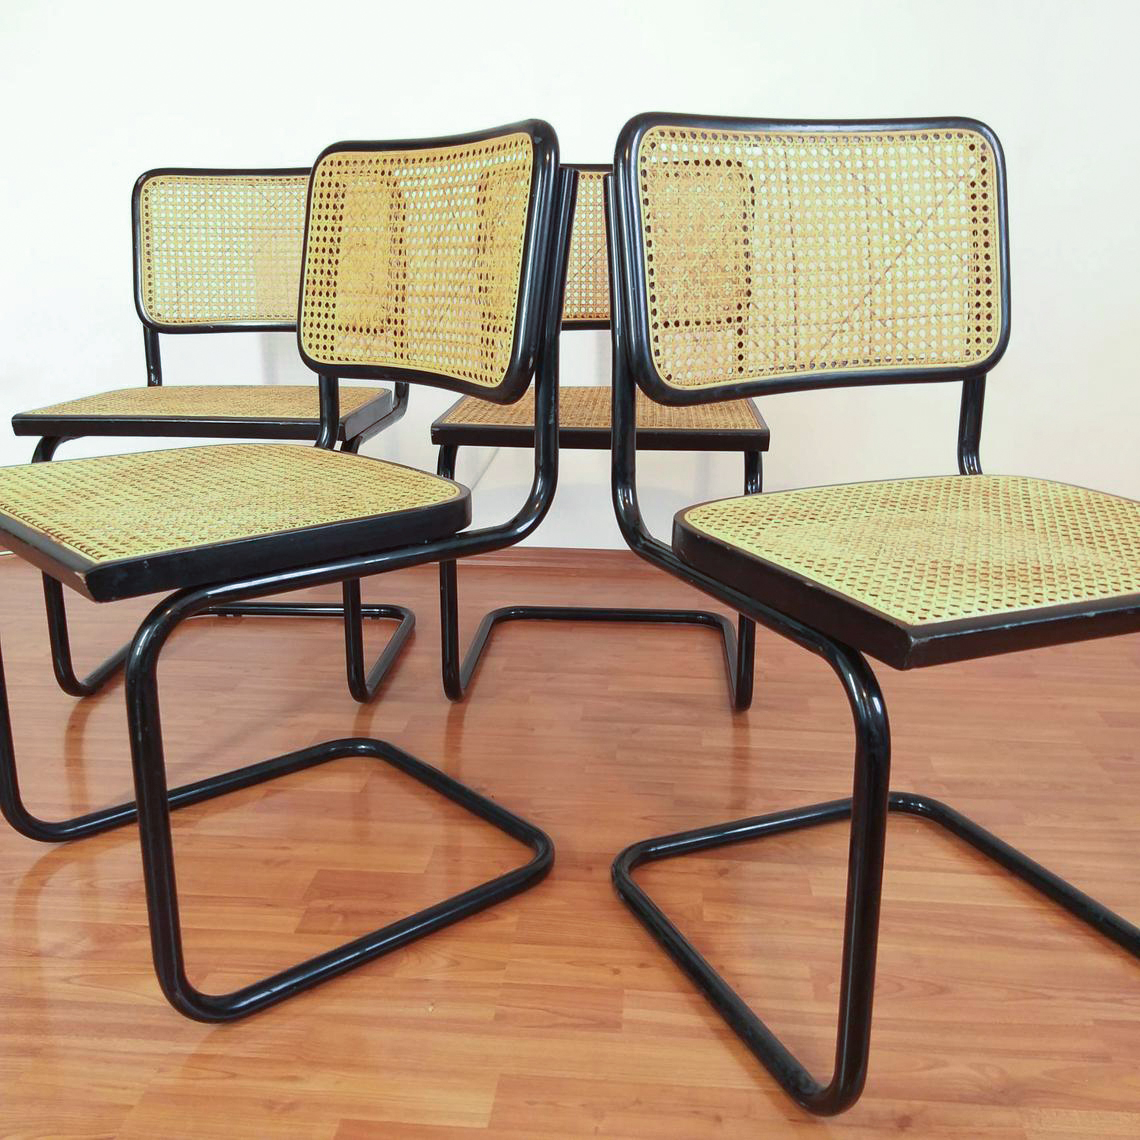 Set of 4 Mid Century Modern Marcel Breuer Cesca Chairs, Italy 80s